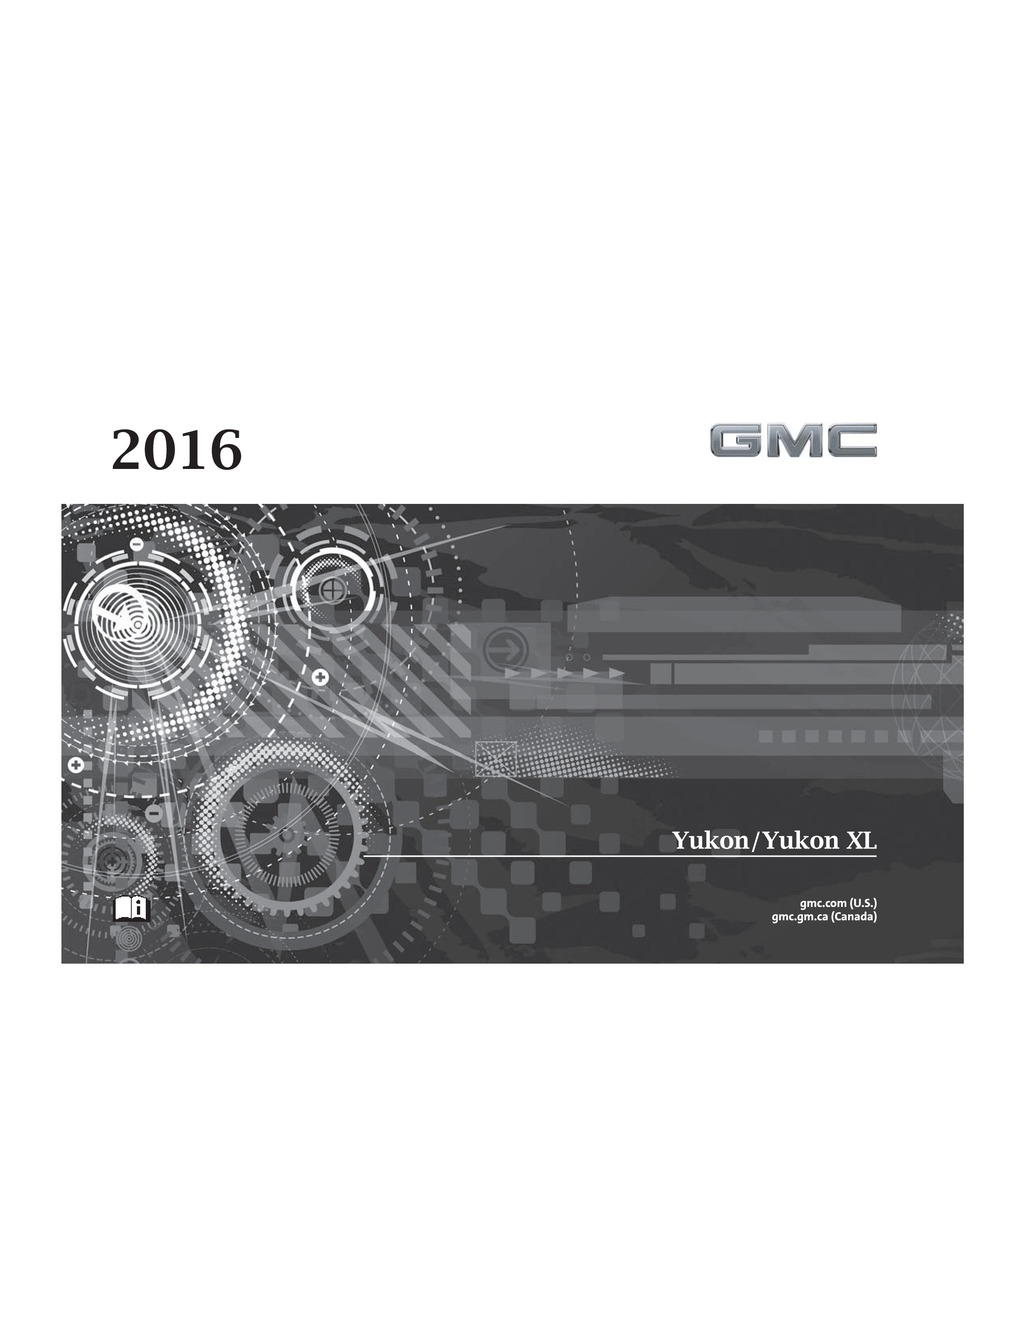 2016 GMC Yukon owners manual